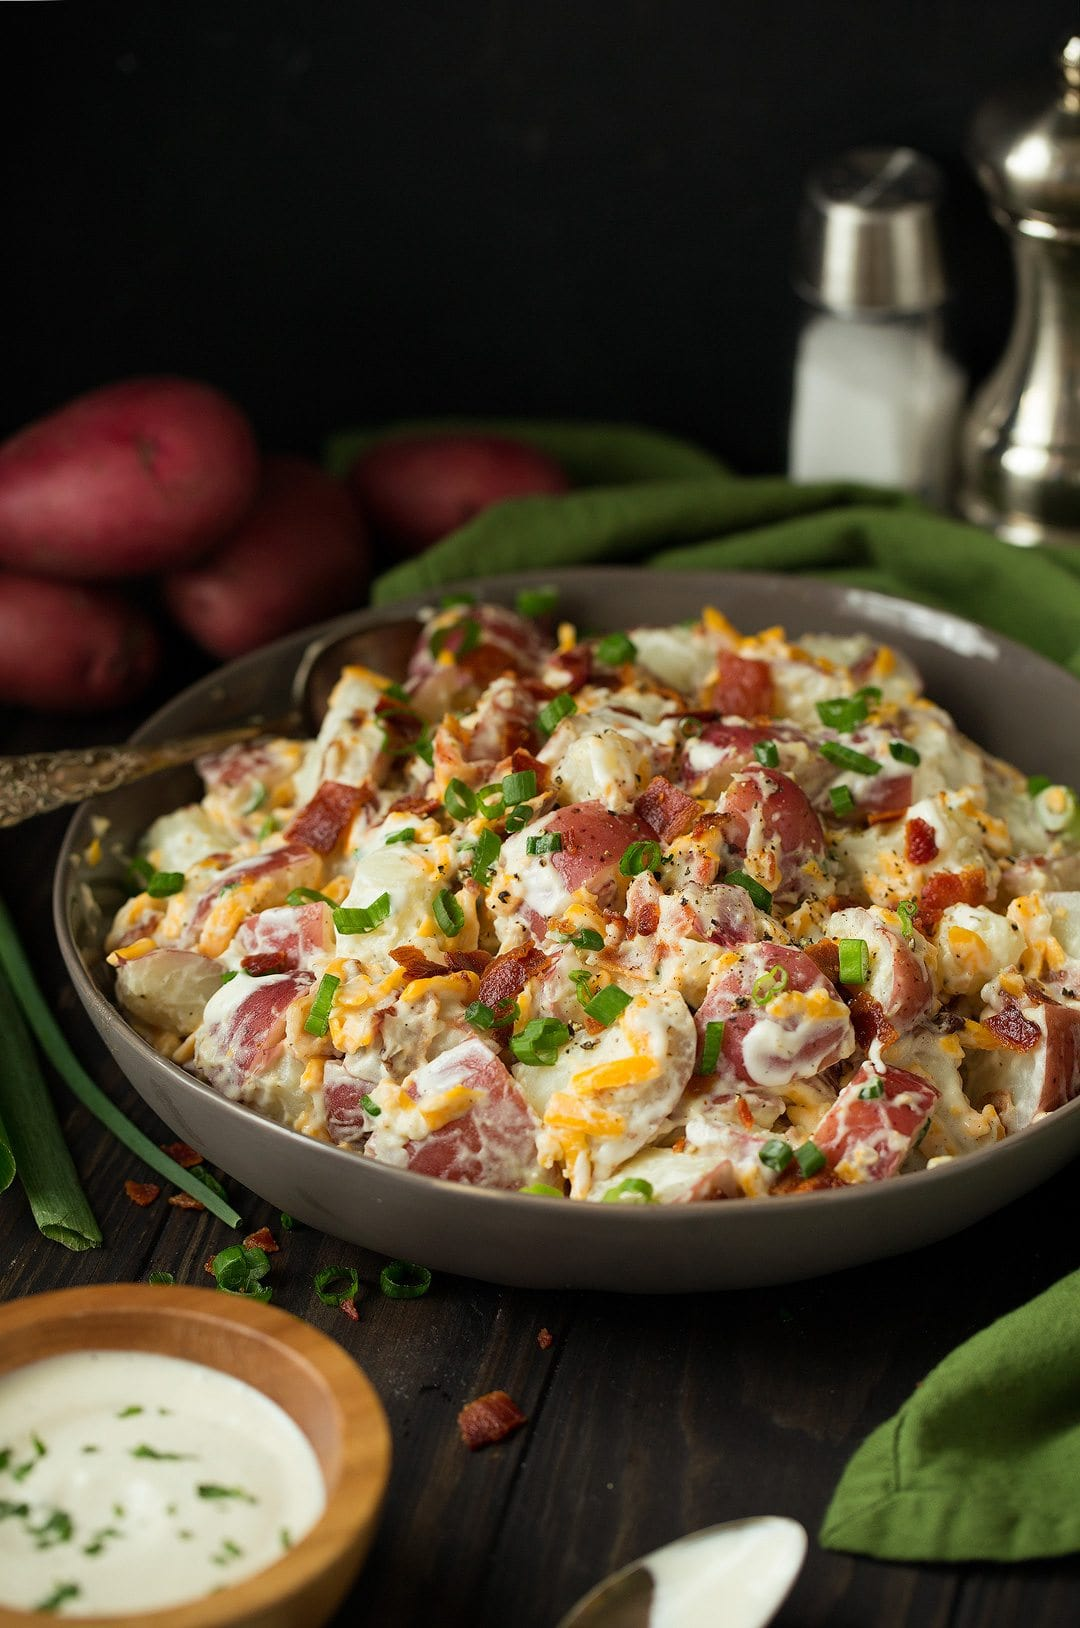 cheddar bacon ranch potato salad in a bowl with a spoon